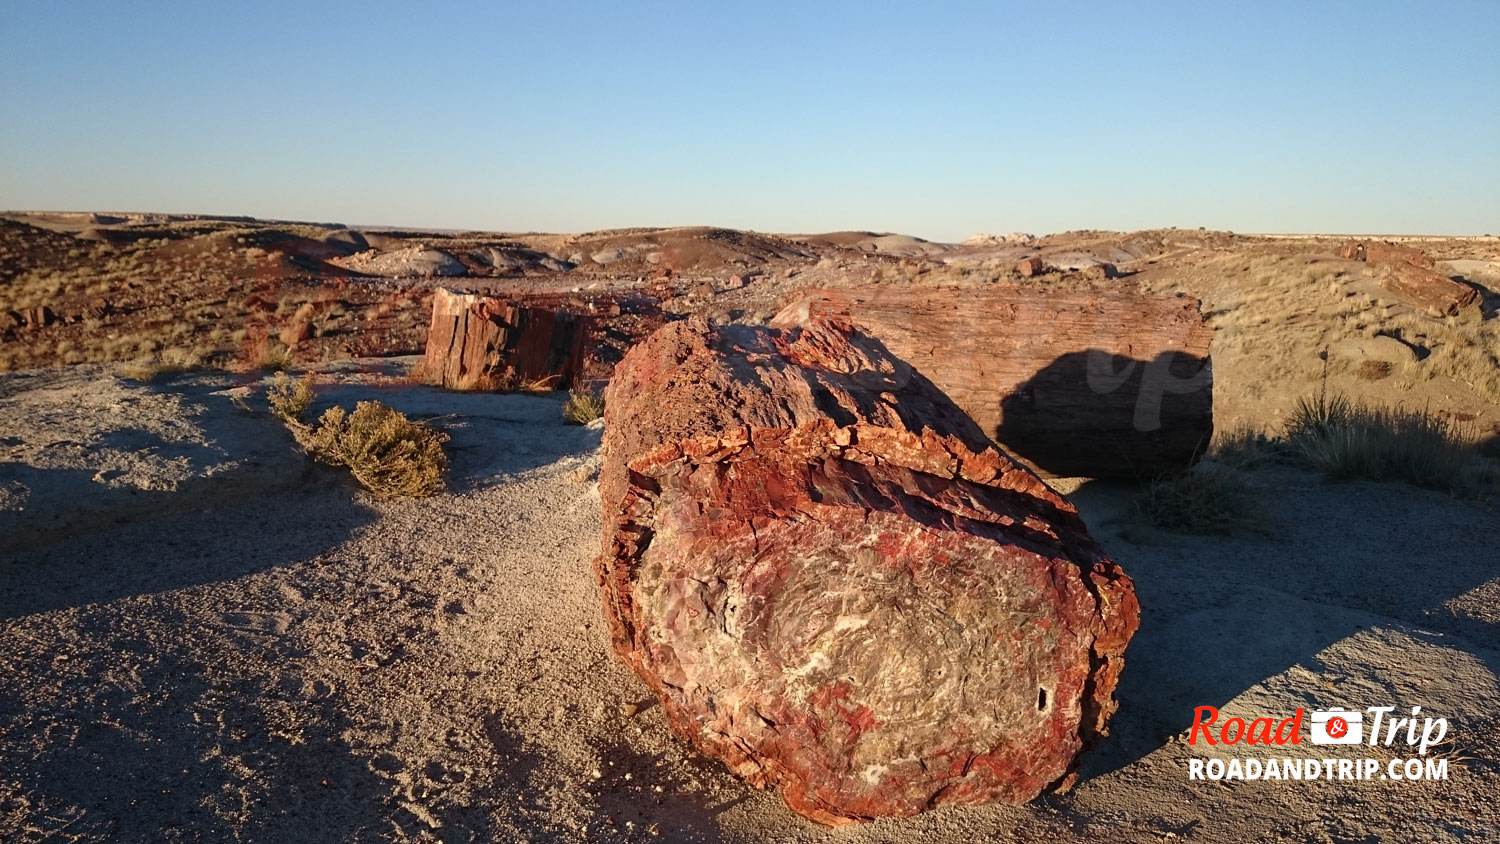 Balade à Petrified Forest en Arizona